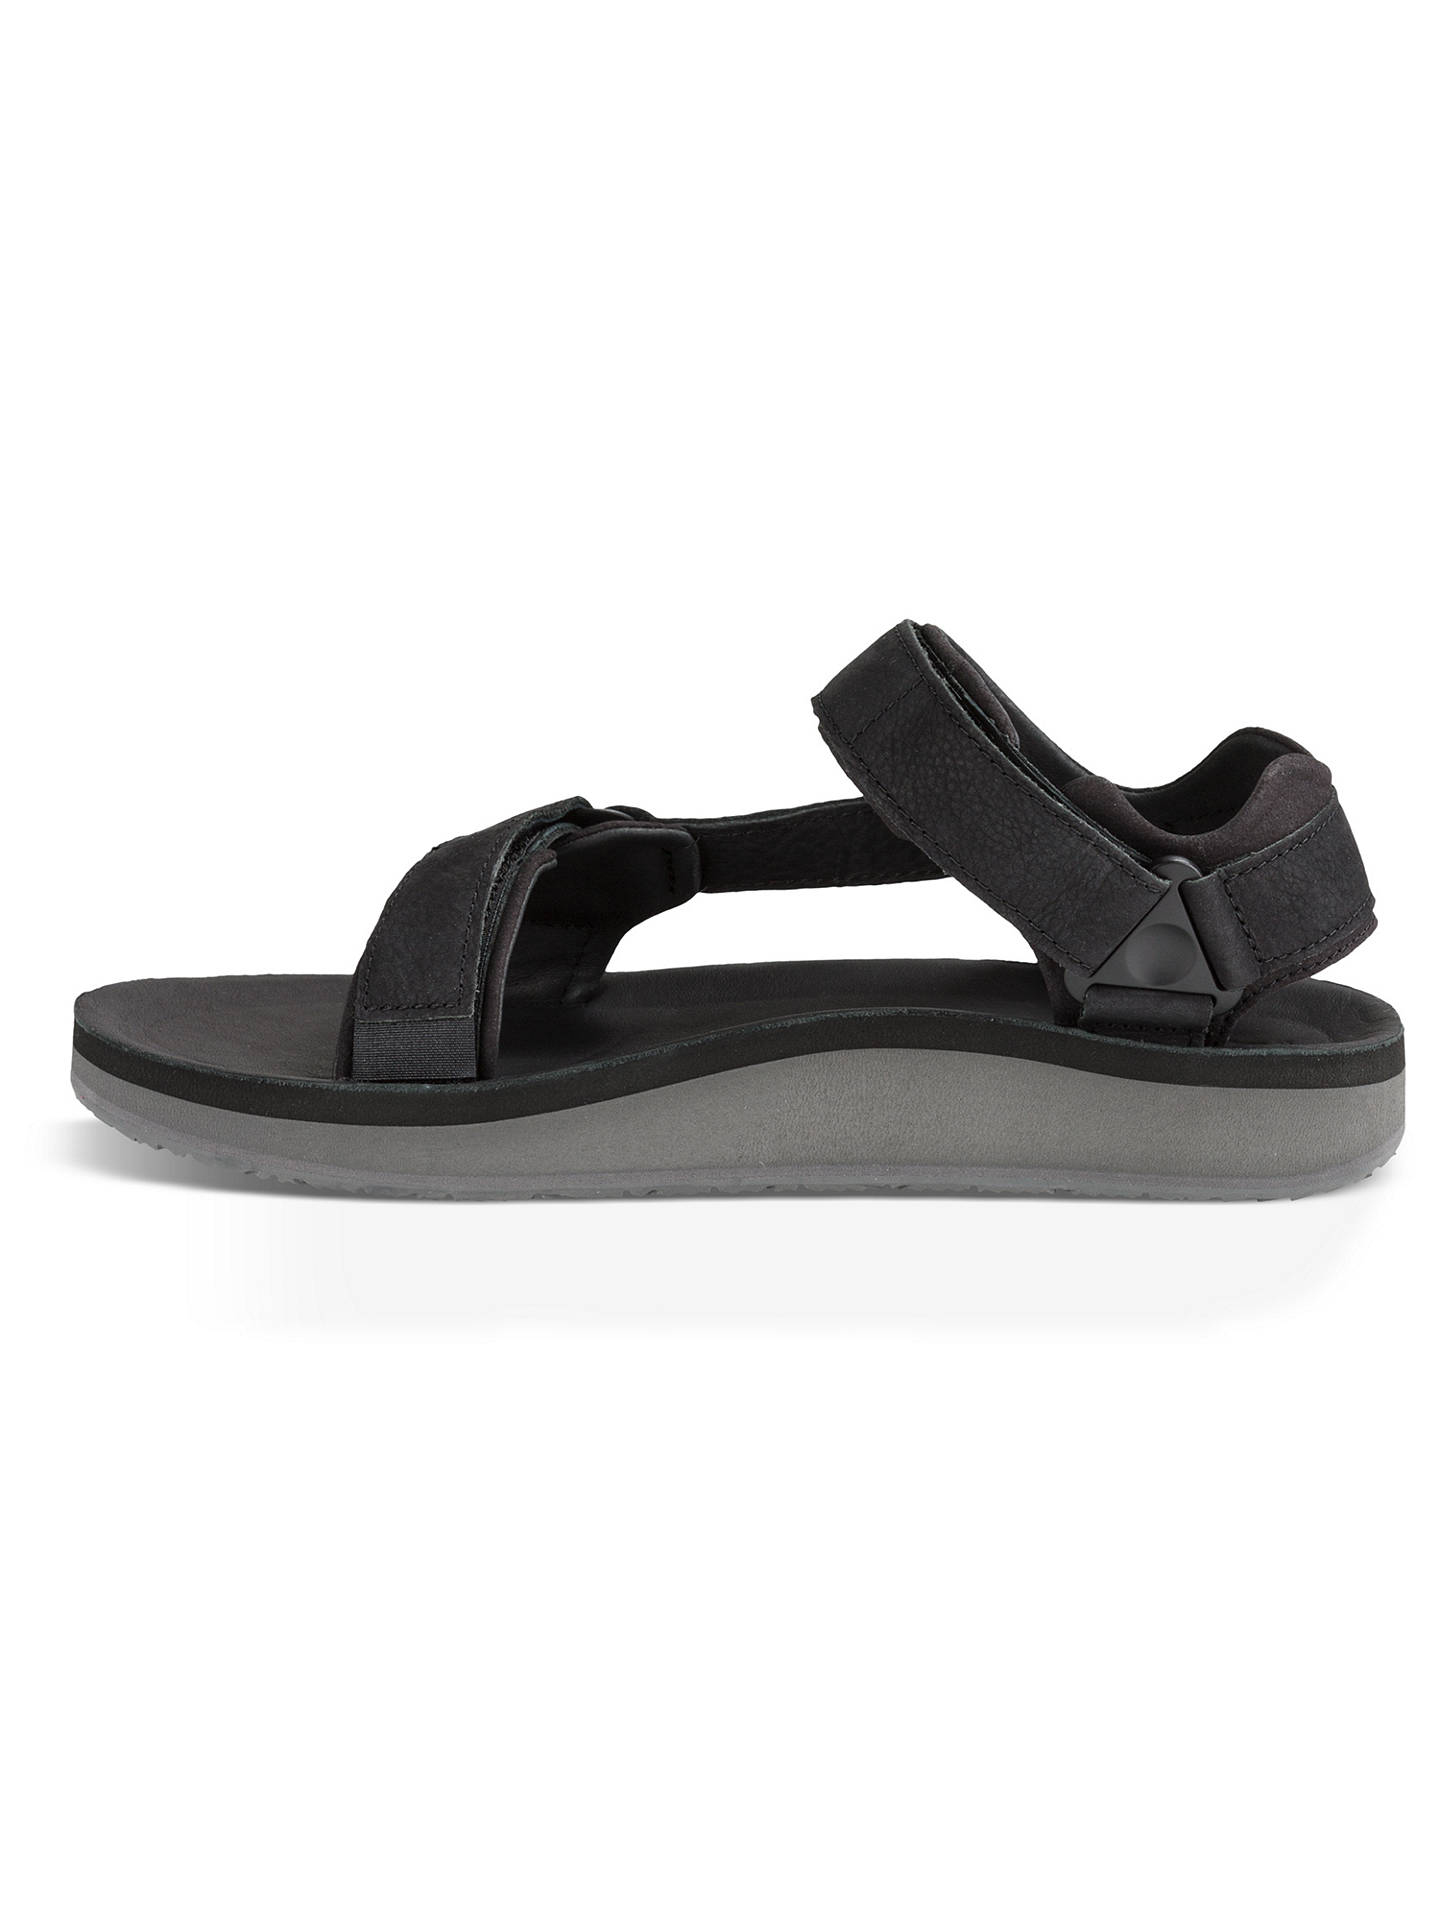 c17fb6eb2 Teva Original Leather Sandals at John Lewis   Partners